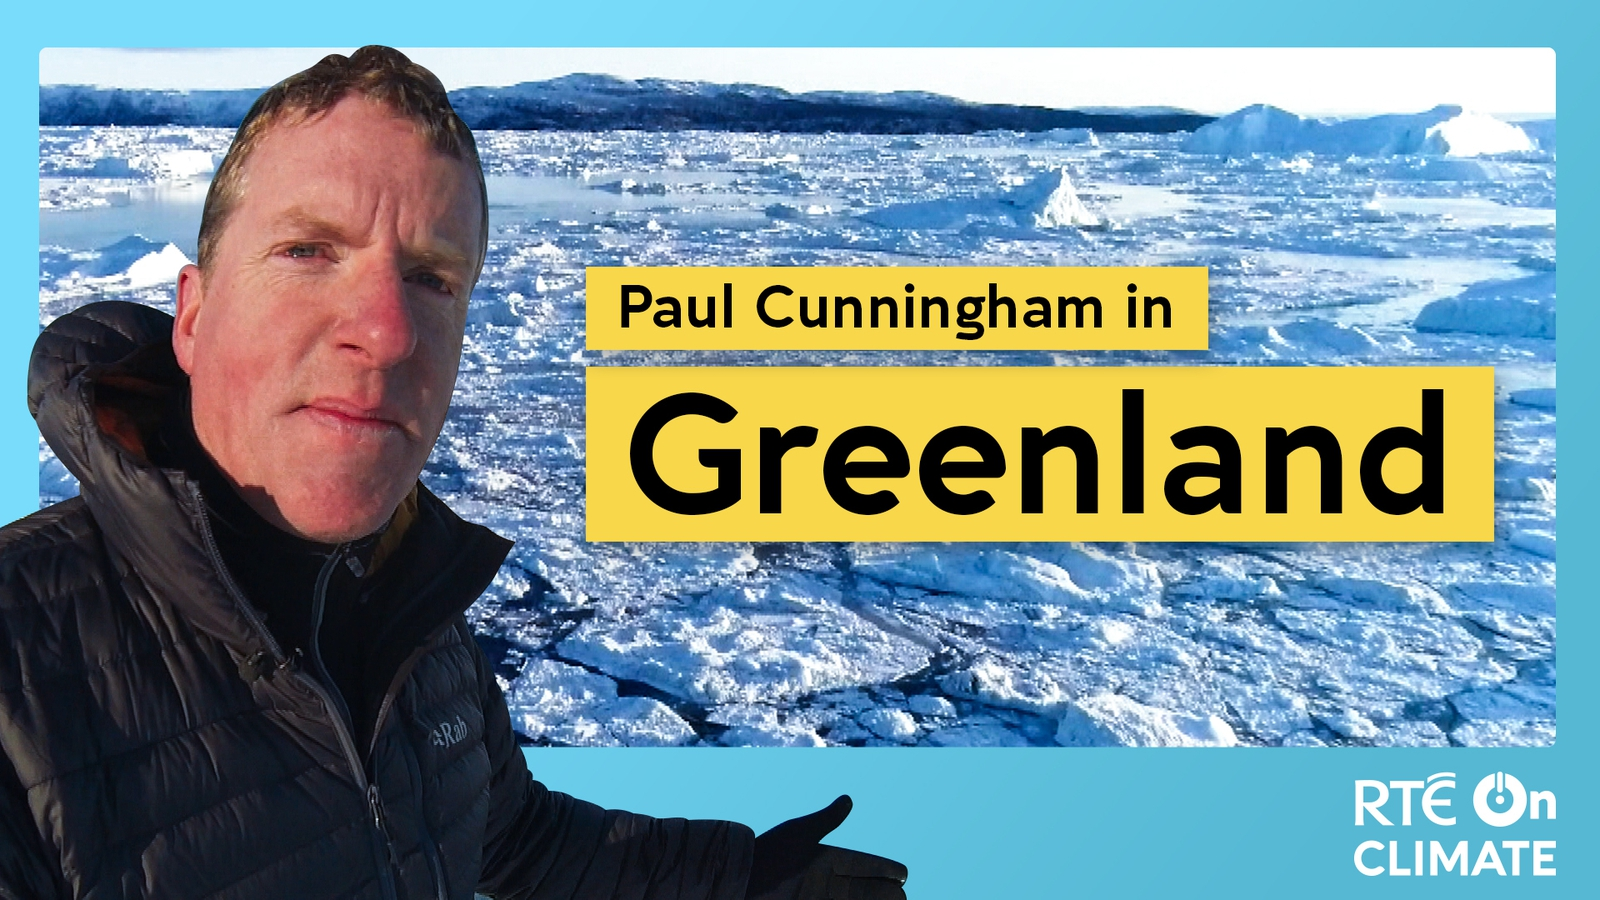 Paul Cunningham in Greenland for RTÉ on Climate week